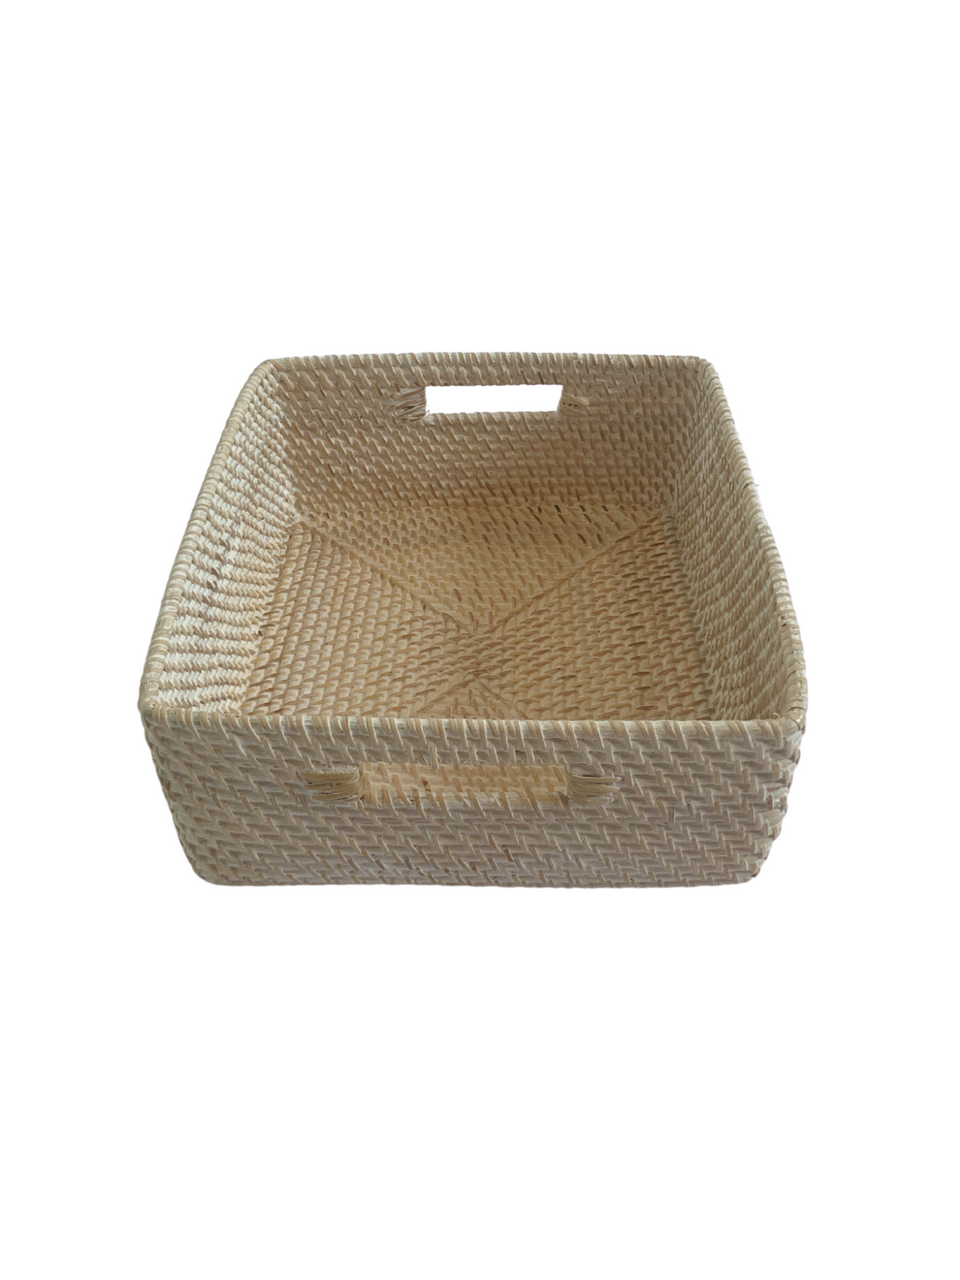 Storage Basket - Medium - White Wash Rattan